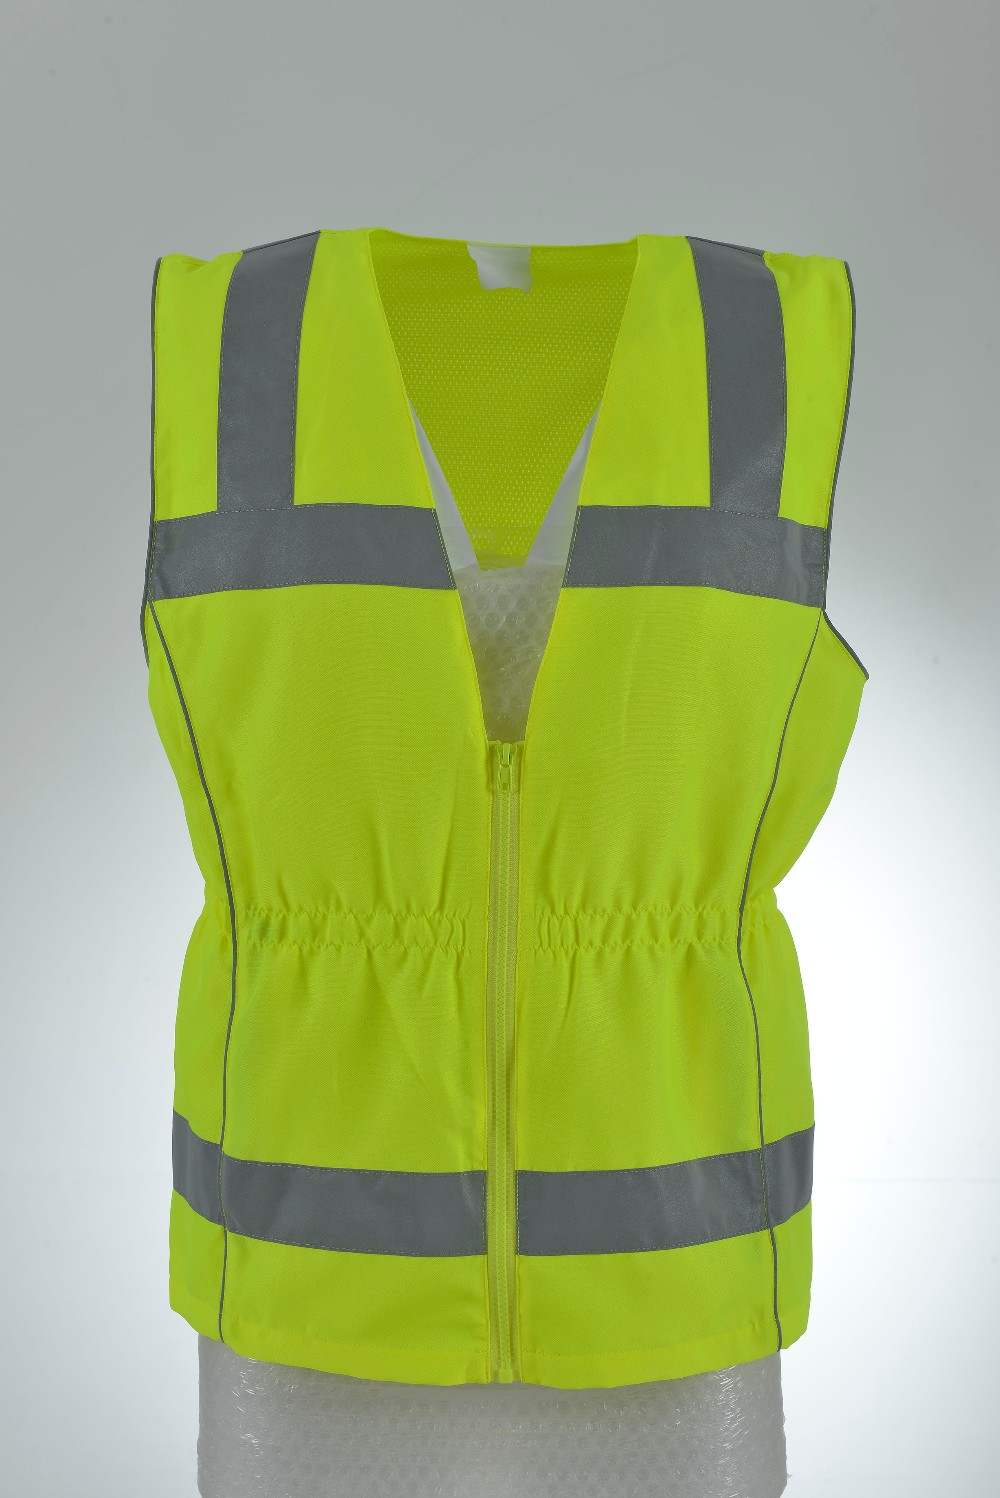 Women 100% polyester traffic reflective safety vest with collect waist